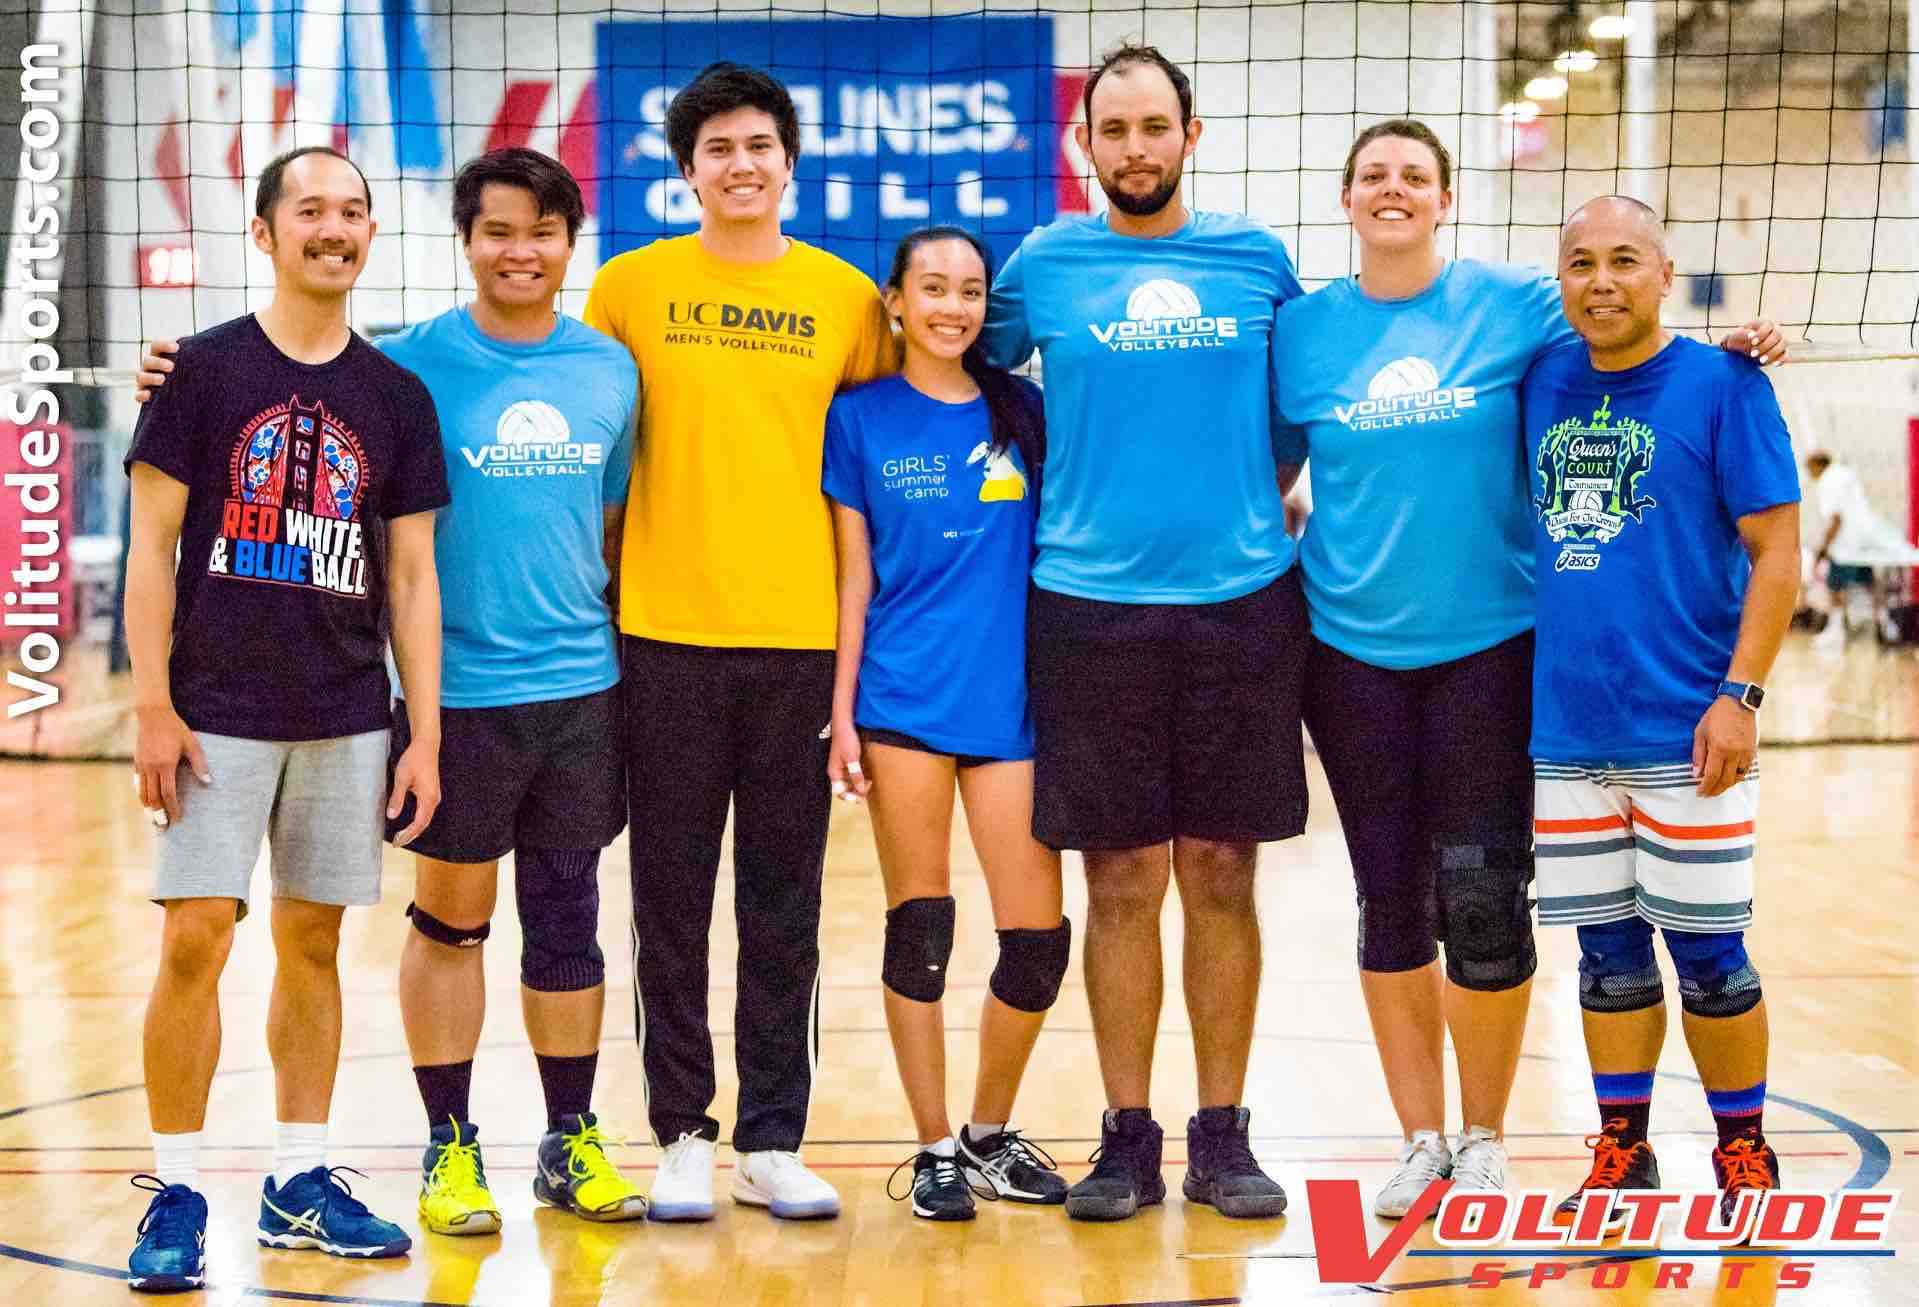 indoor volleyball league Anaheim